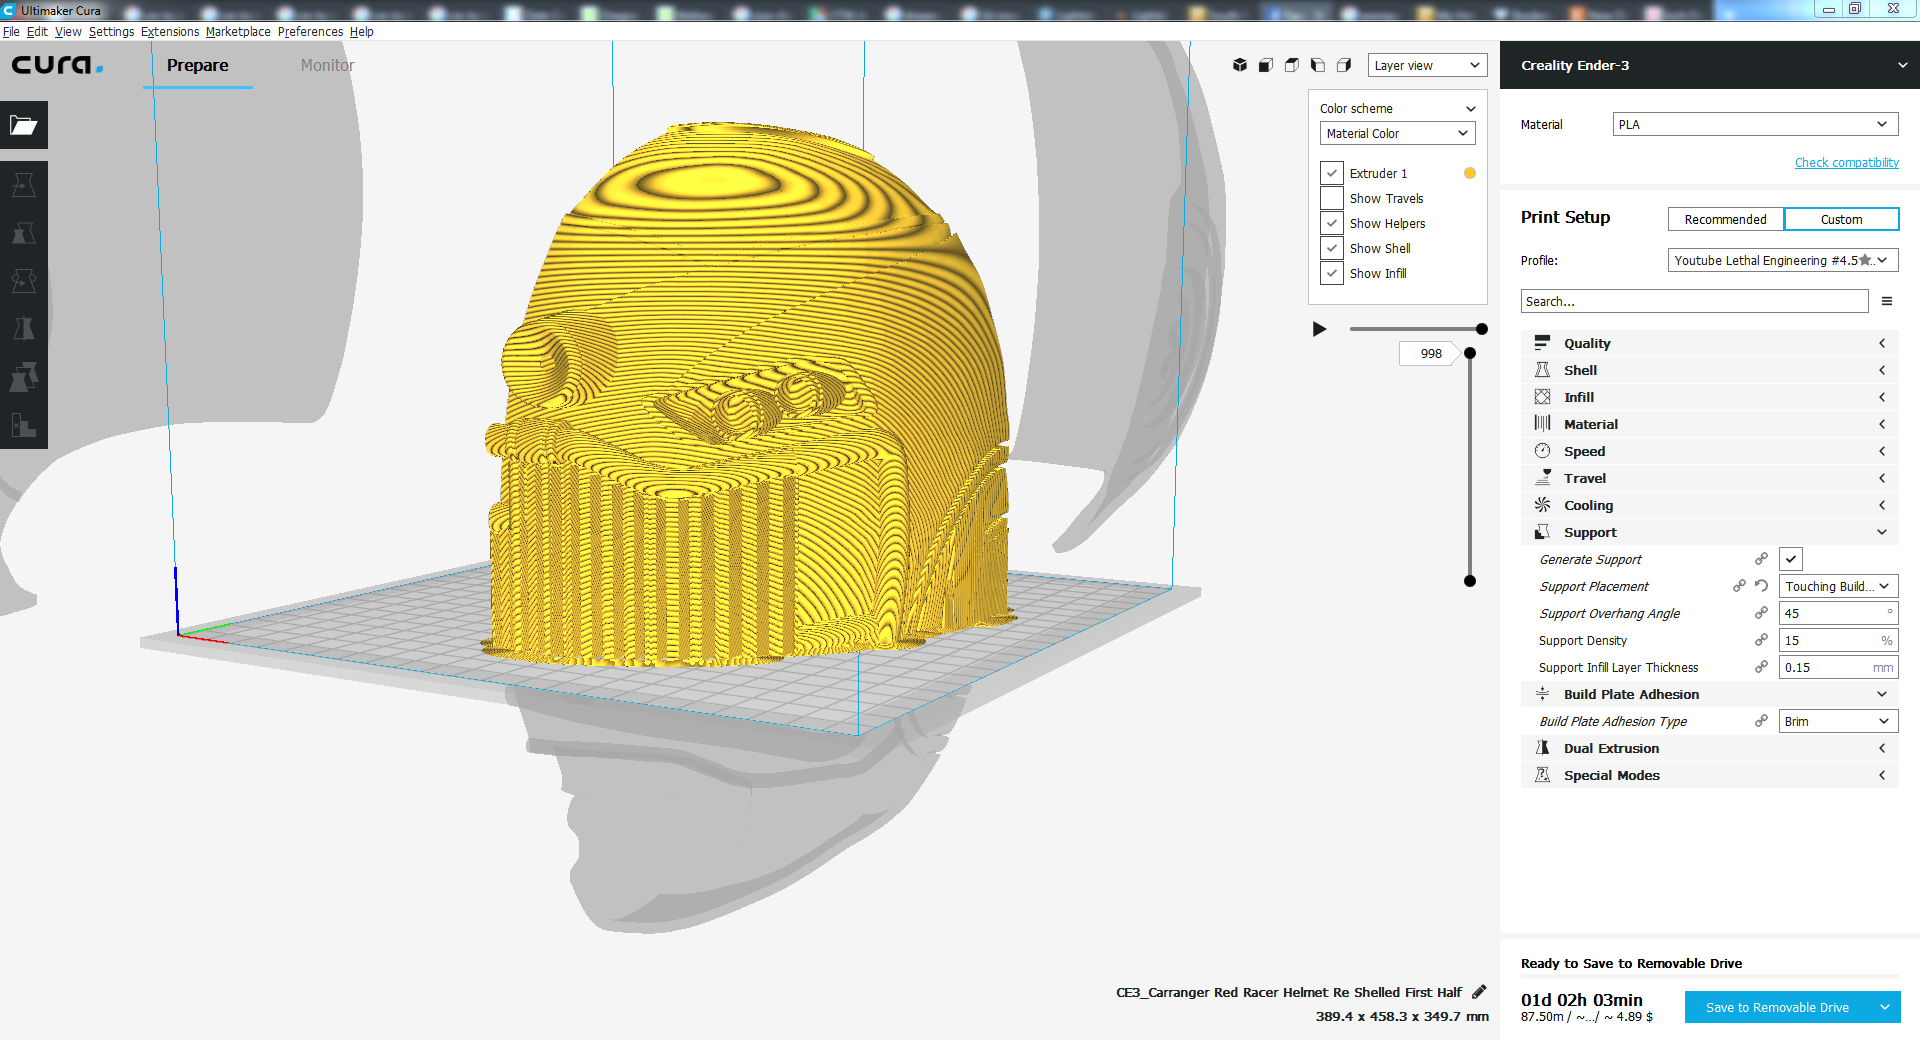 2019-03-20 12_20_49-Ultimaker Cura.png